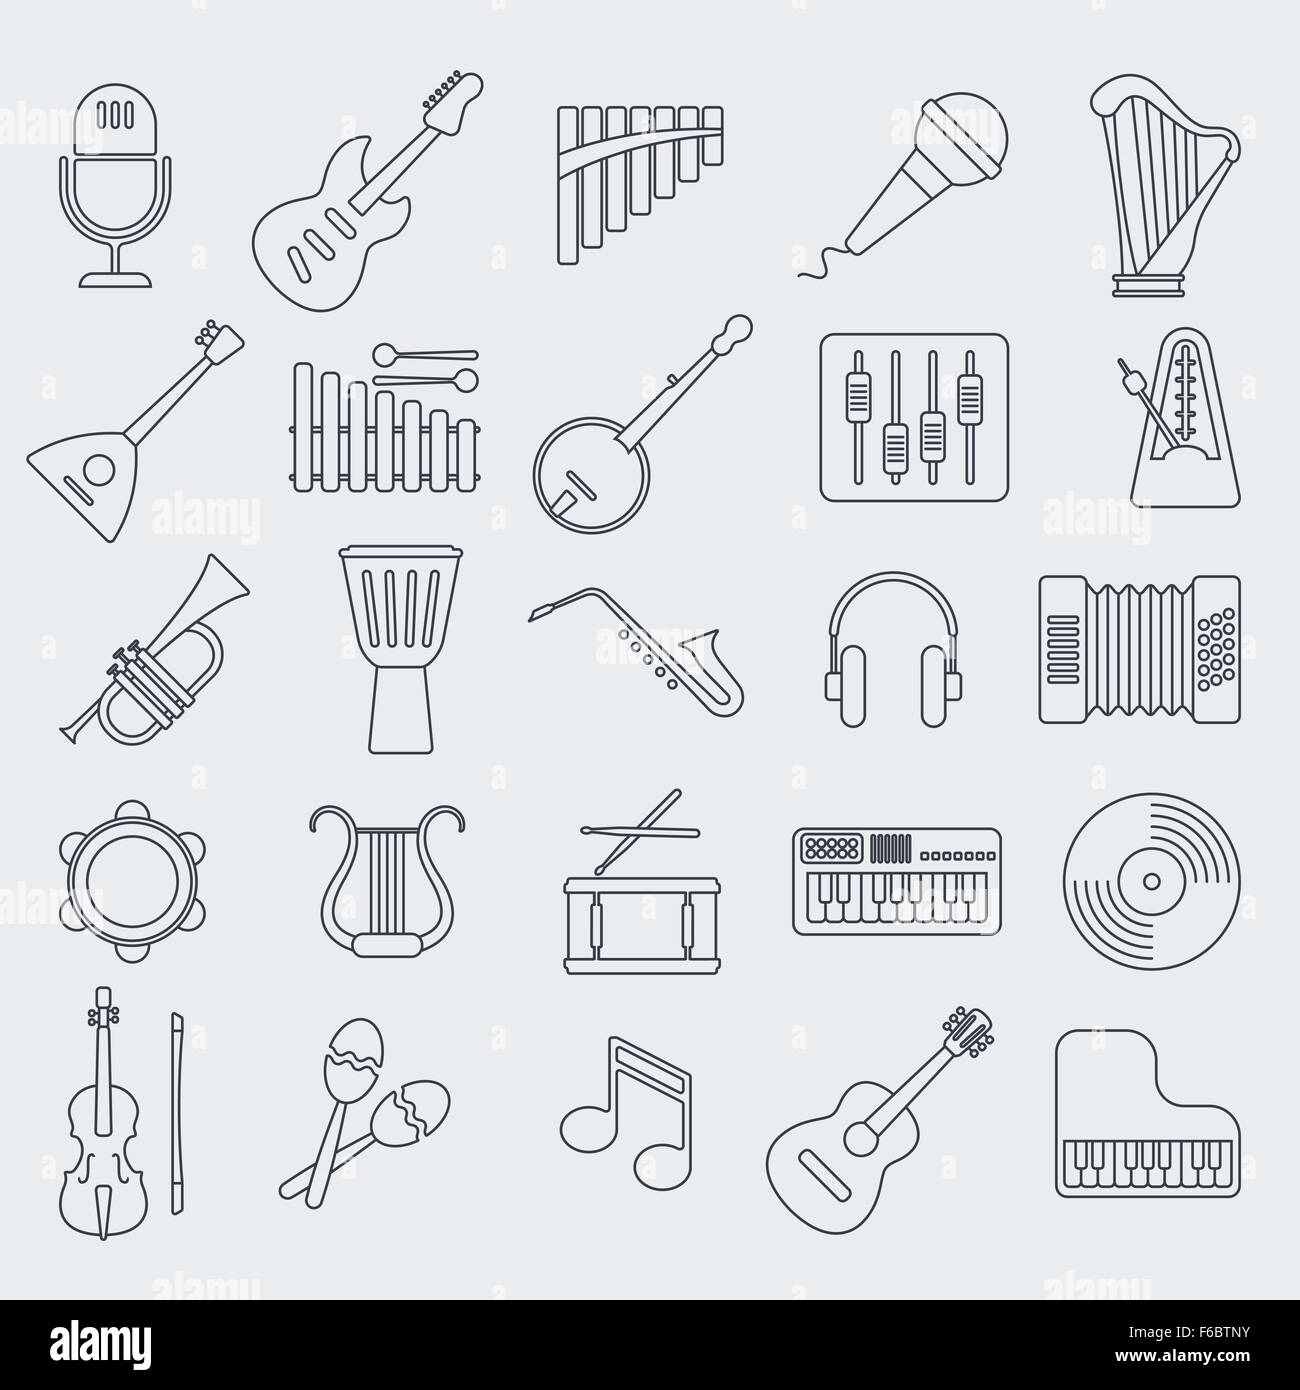 Musical instrument line vector icon. - Stock Image